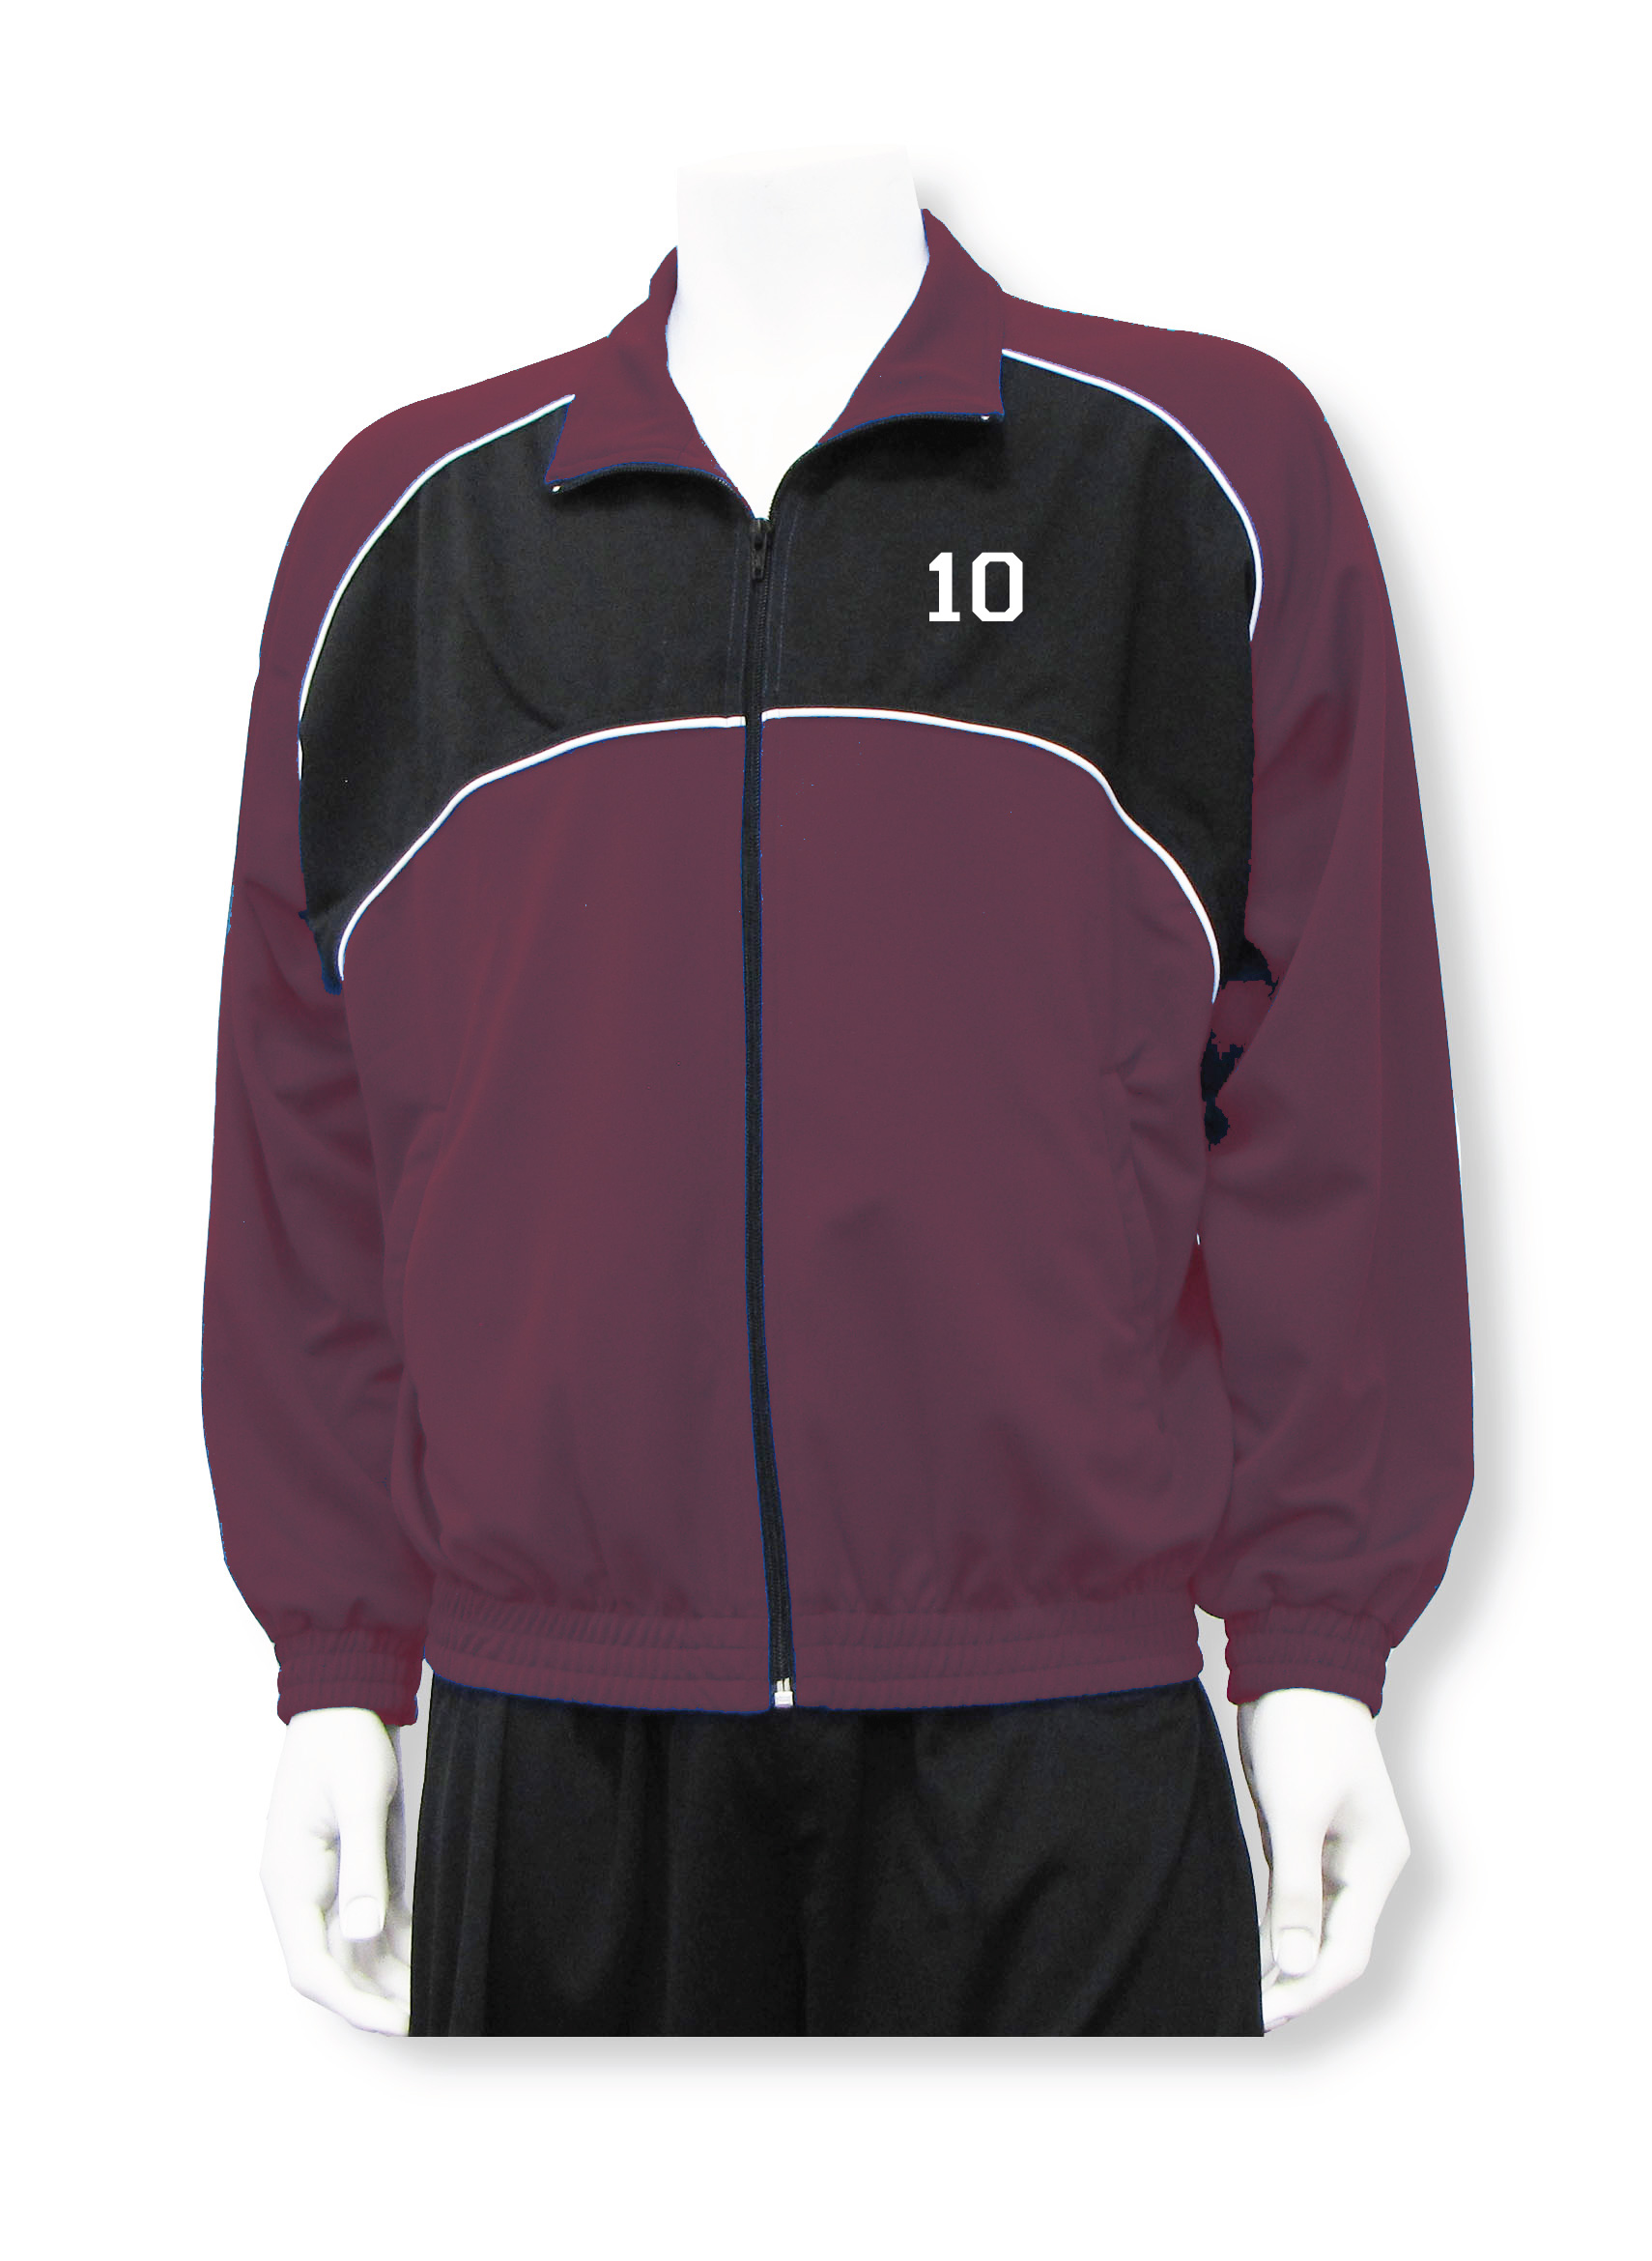 Crossfire soccer warm up jacket in maroon/black with number by Code Four Athletics